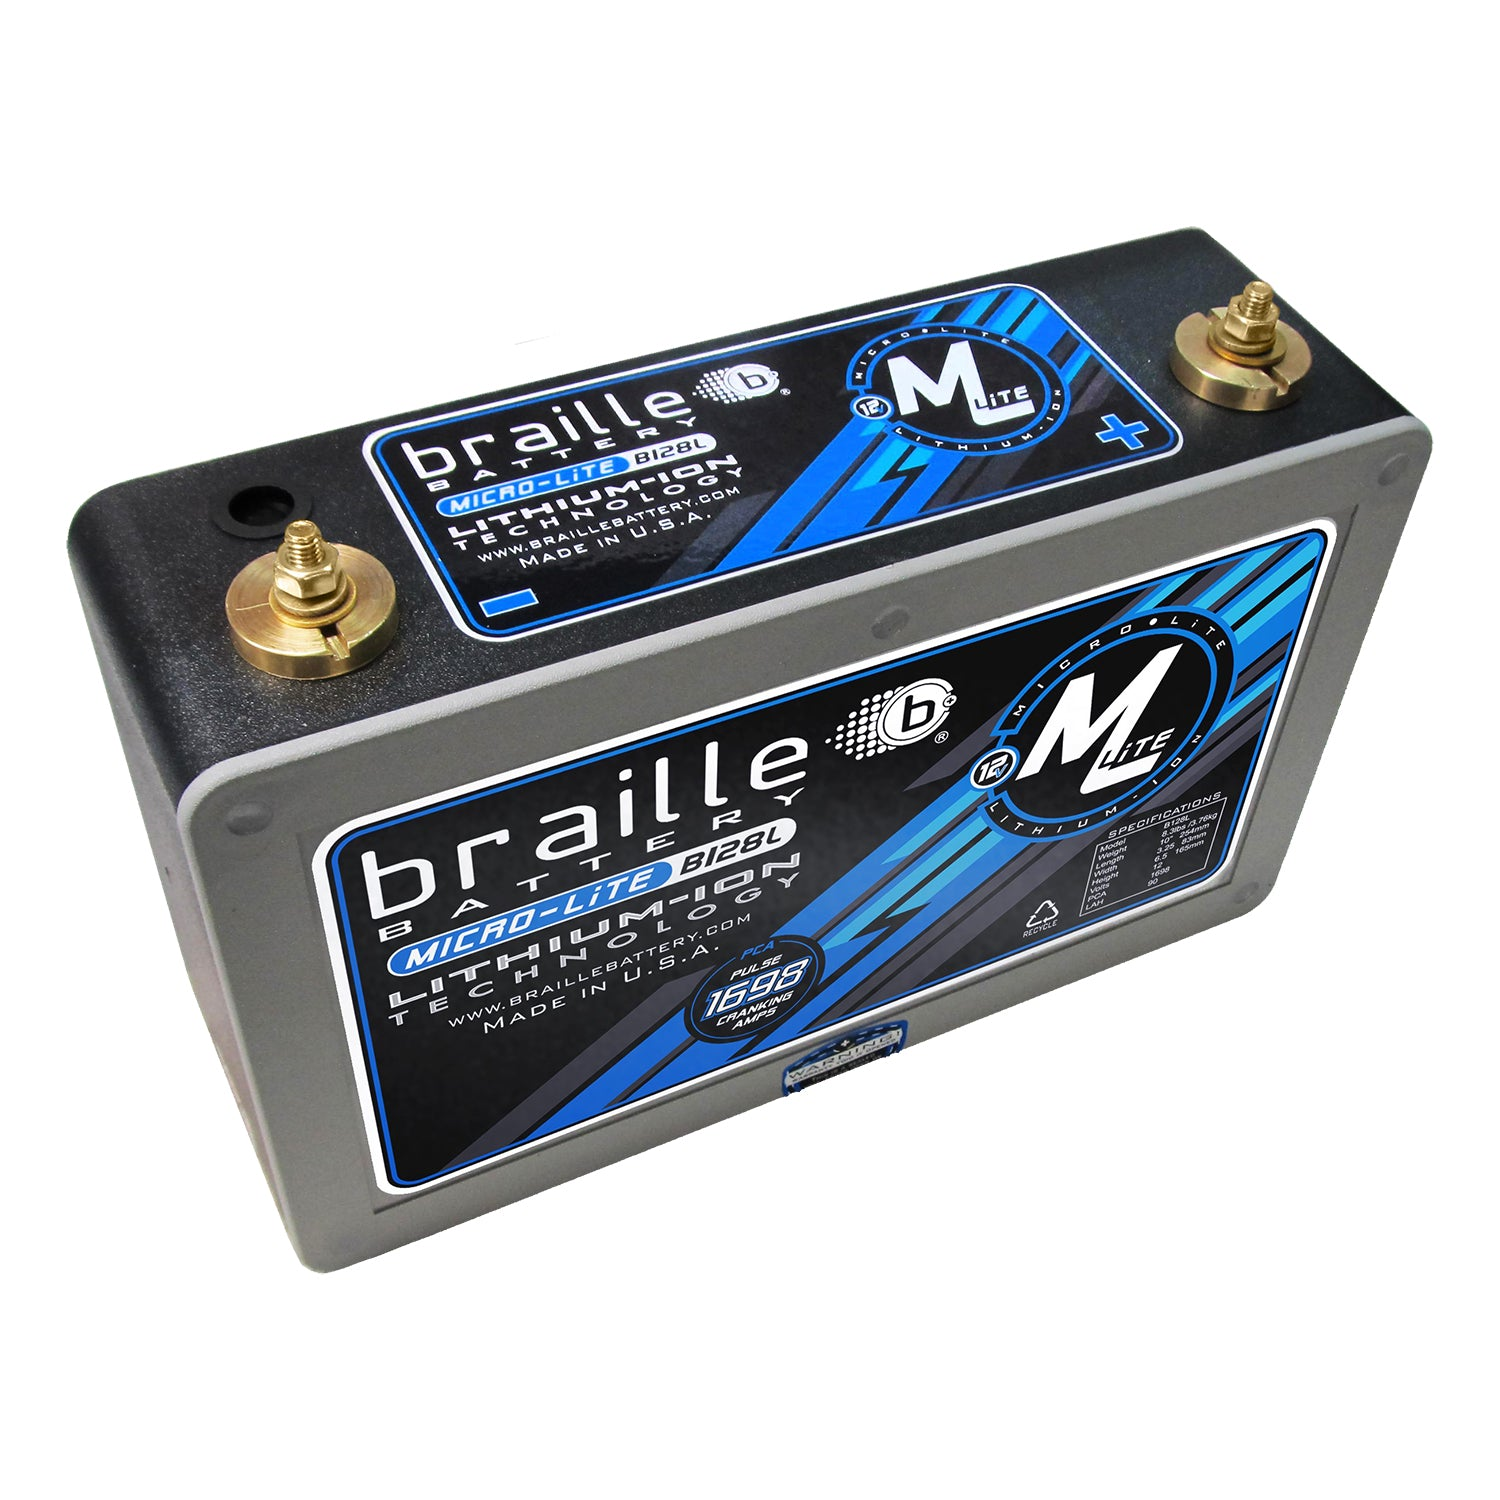 B128L-M6 - MicroLite B128L-M6 (metric M6 stud) lithium battery